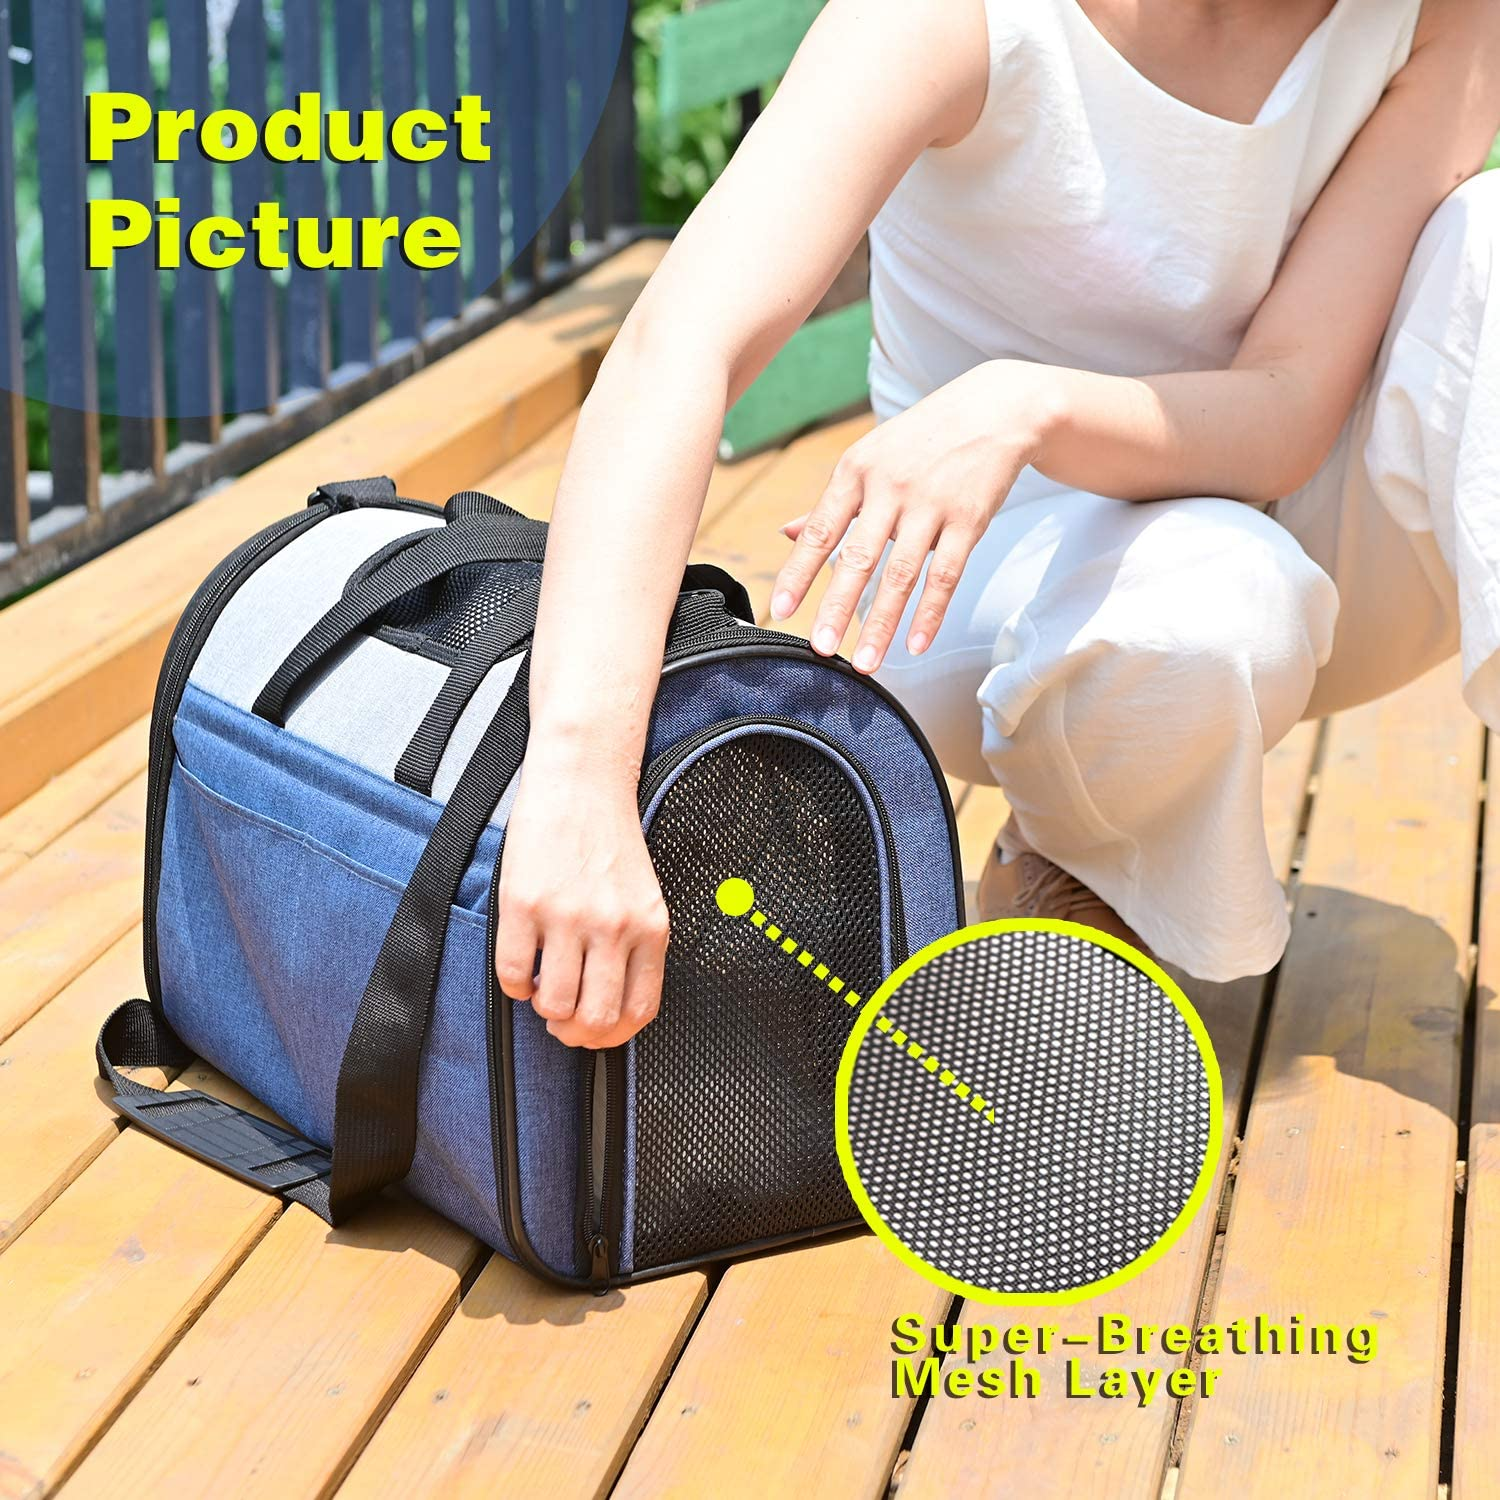 Airline Approved Pet Carrier for Easy Carry on Luggage Best for Small Dog and Cat up to 14 LBS Portable Soft-Sided Air Travel Bag SENYEPETS Pet Carrier for Dogs /& Cats